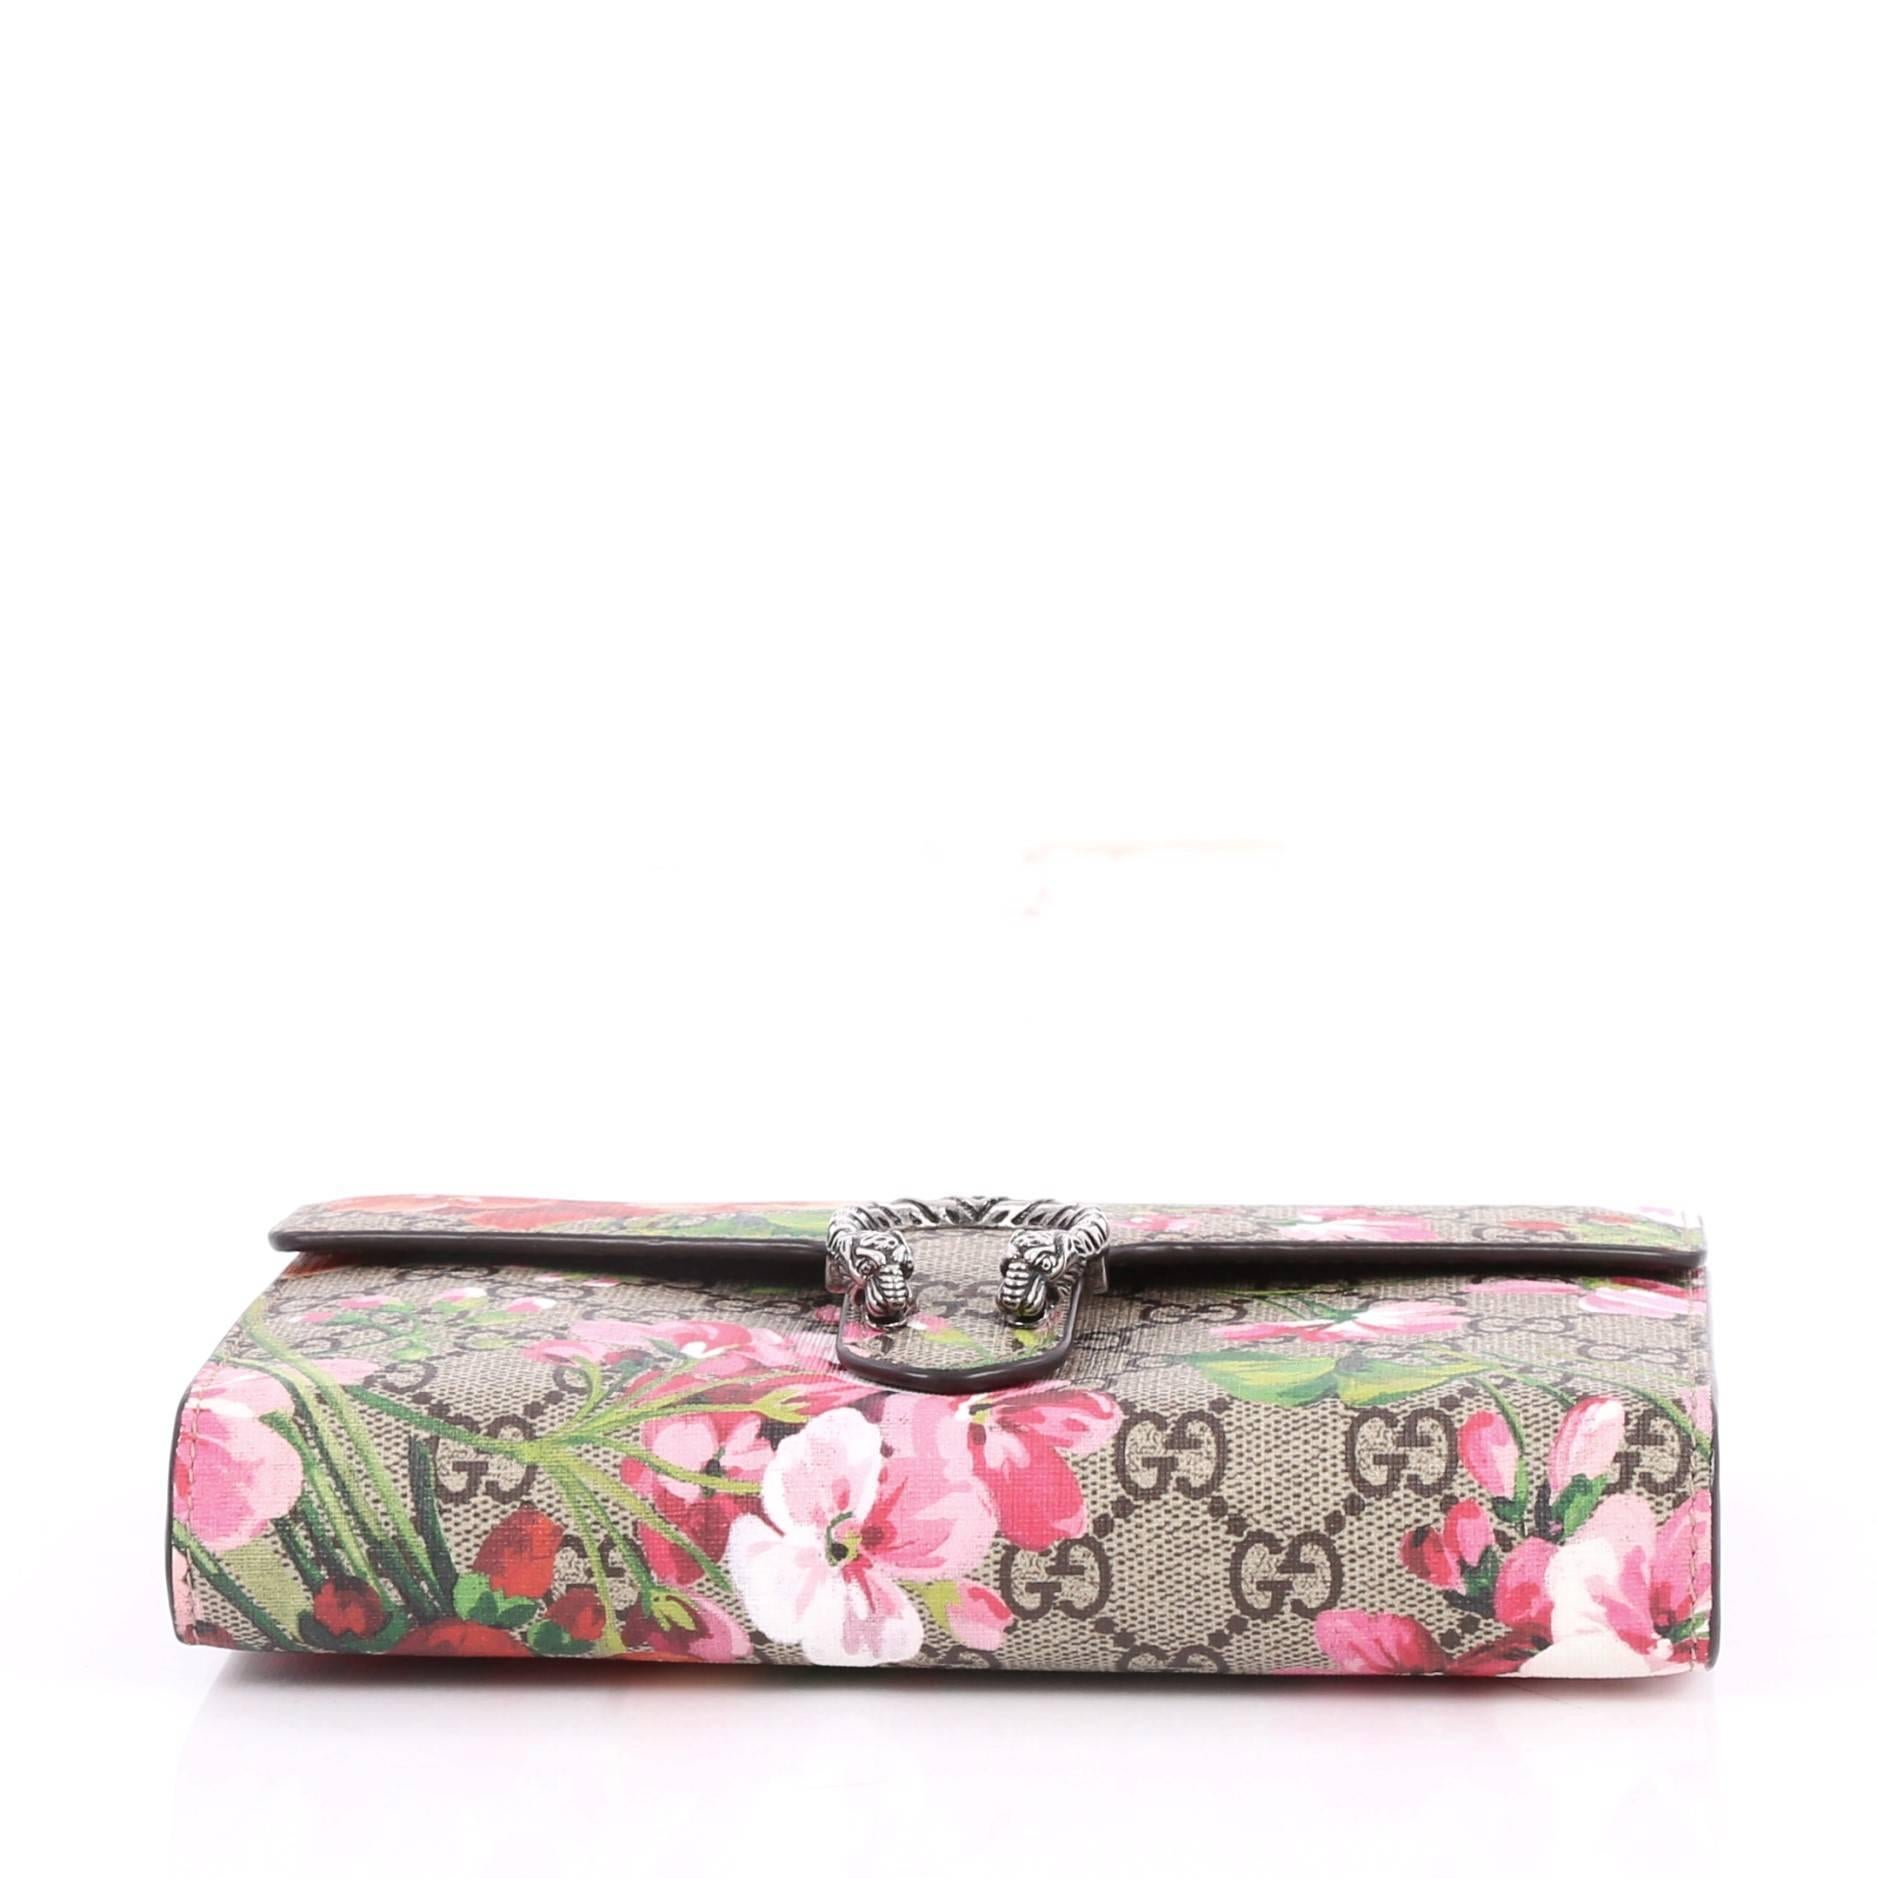 db7b664a062 Gucci Dionysus Chain Wallet Blooms Print GG Coated Canvas Small at 1stdibs .